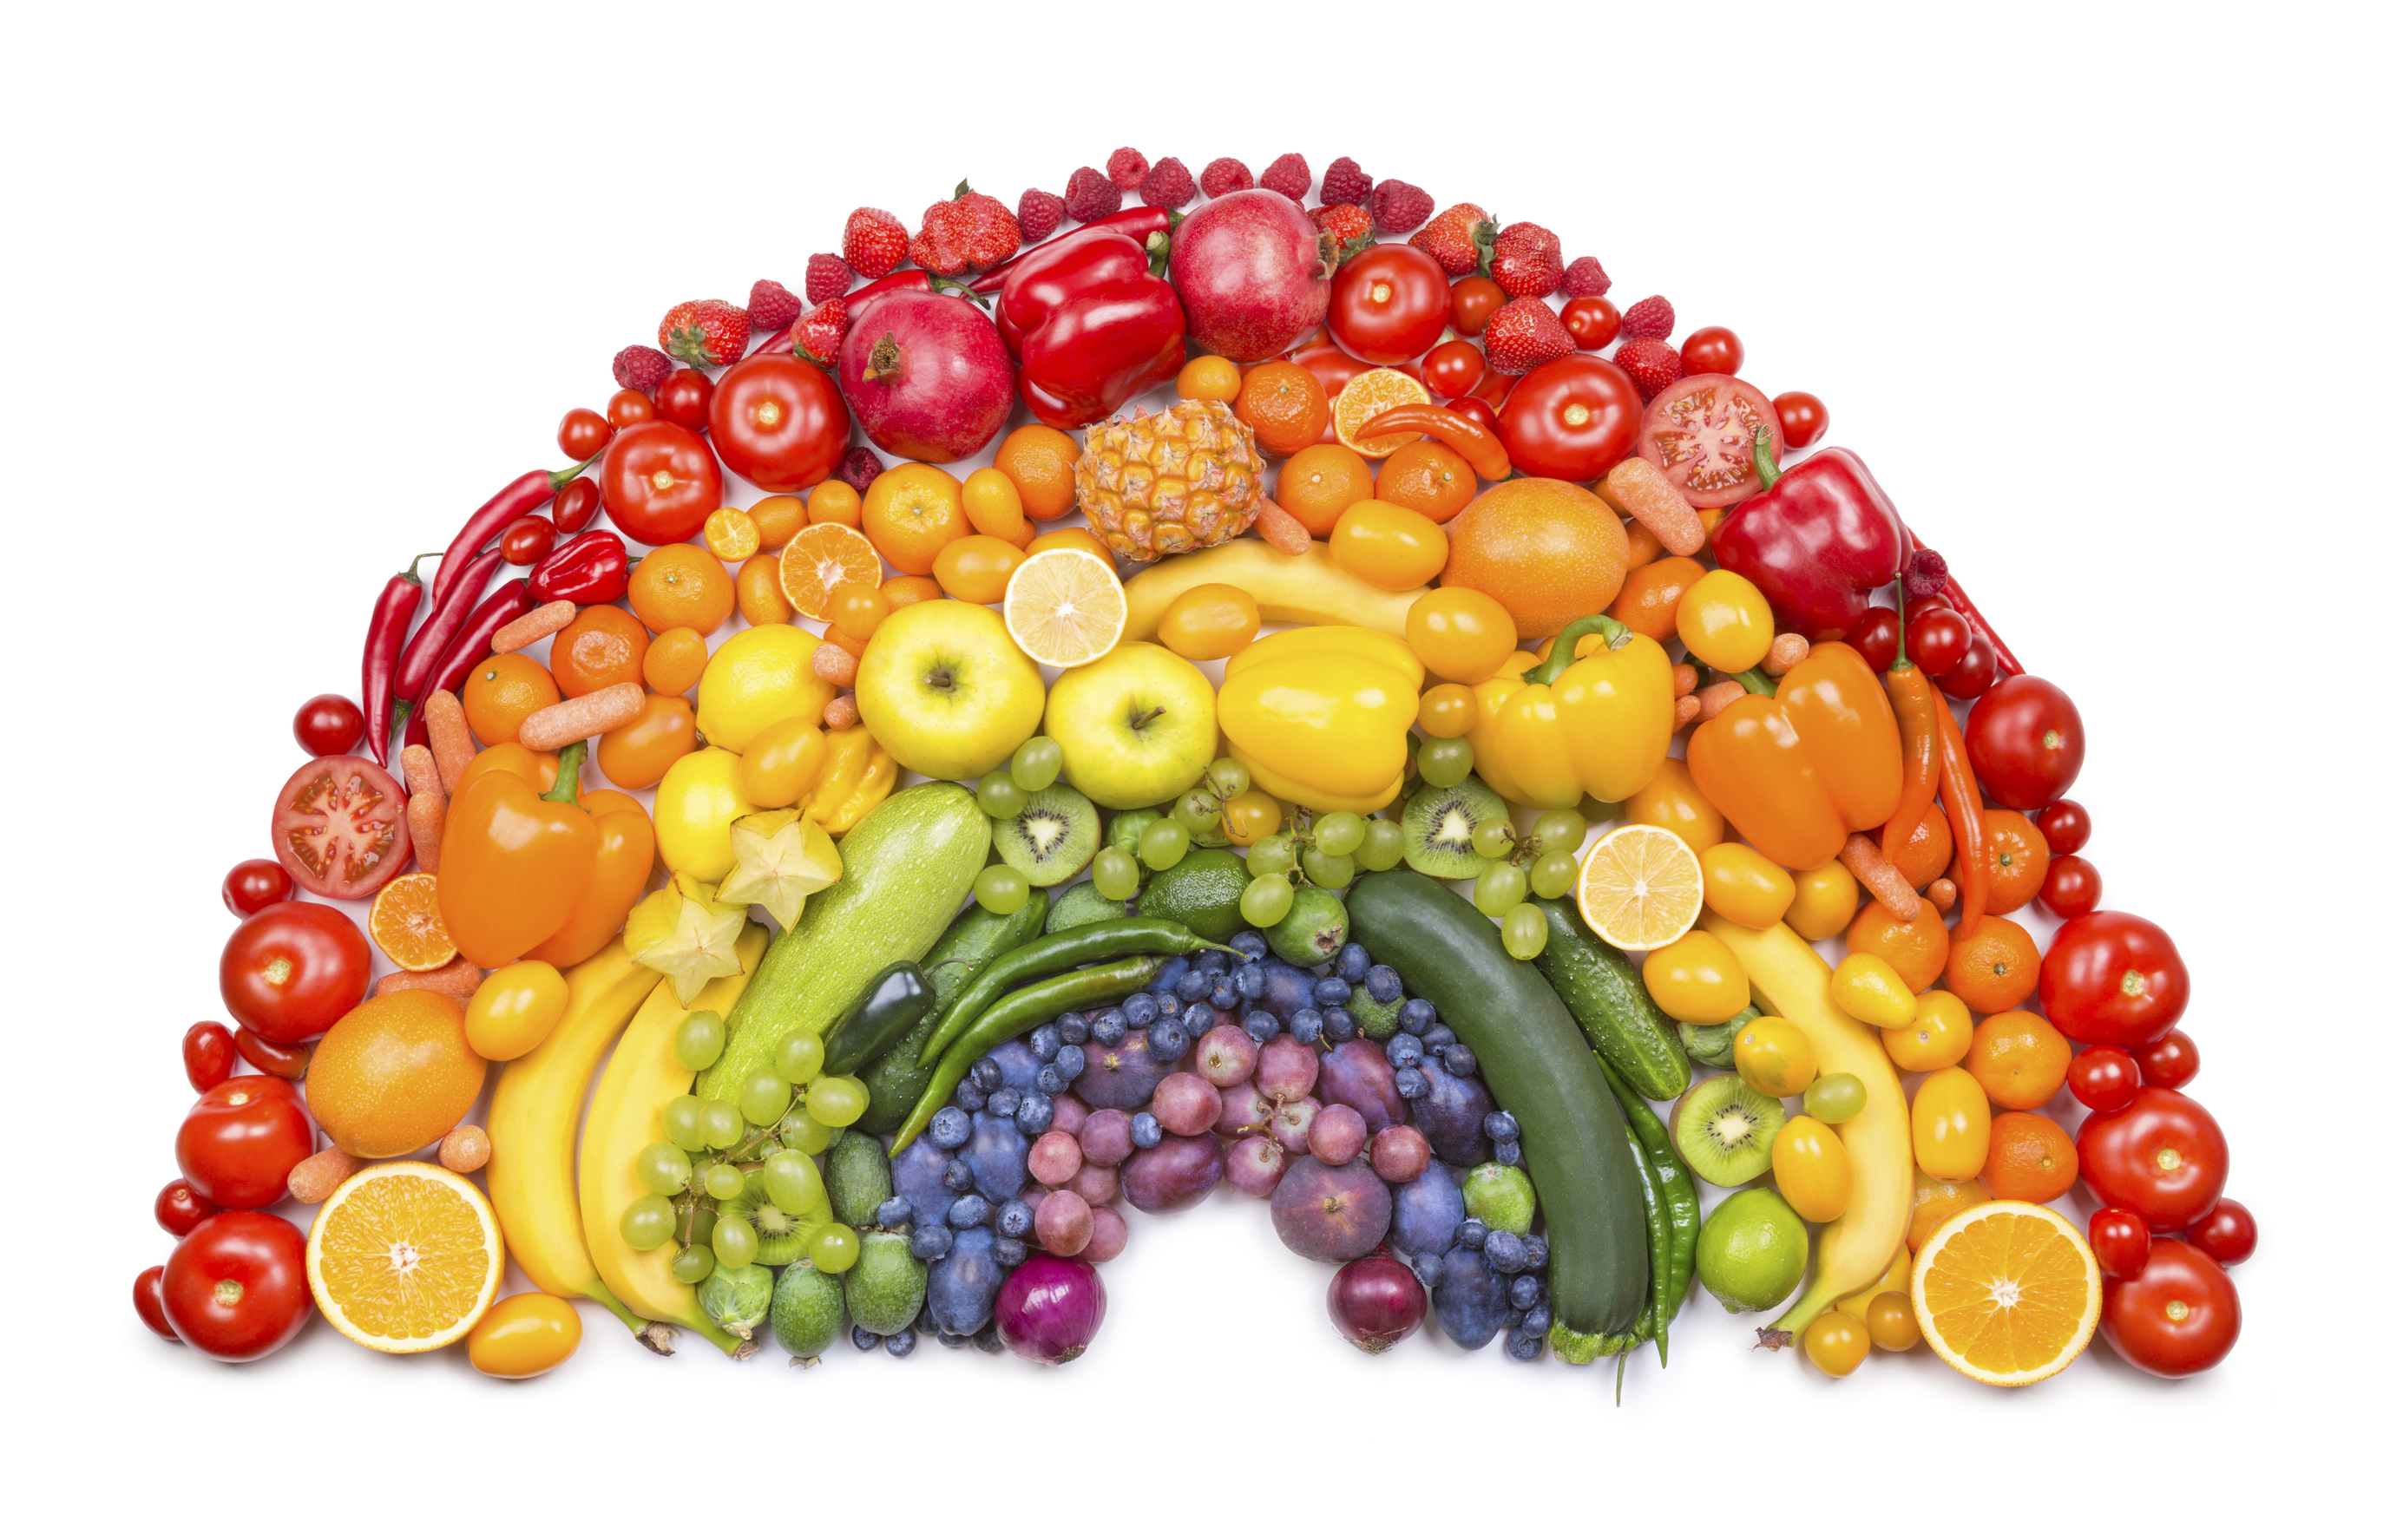 Eat a Rainbow of Colorful Fruits and Veggies